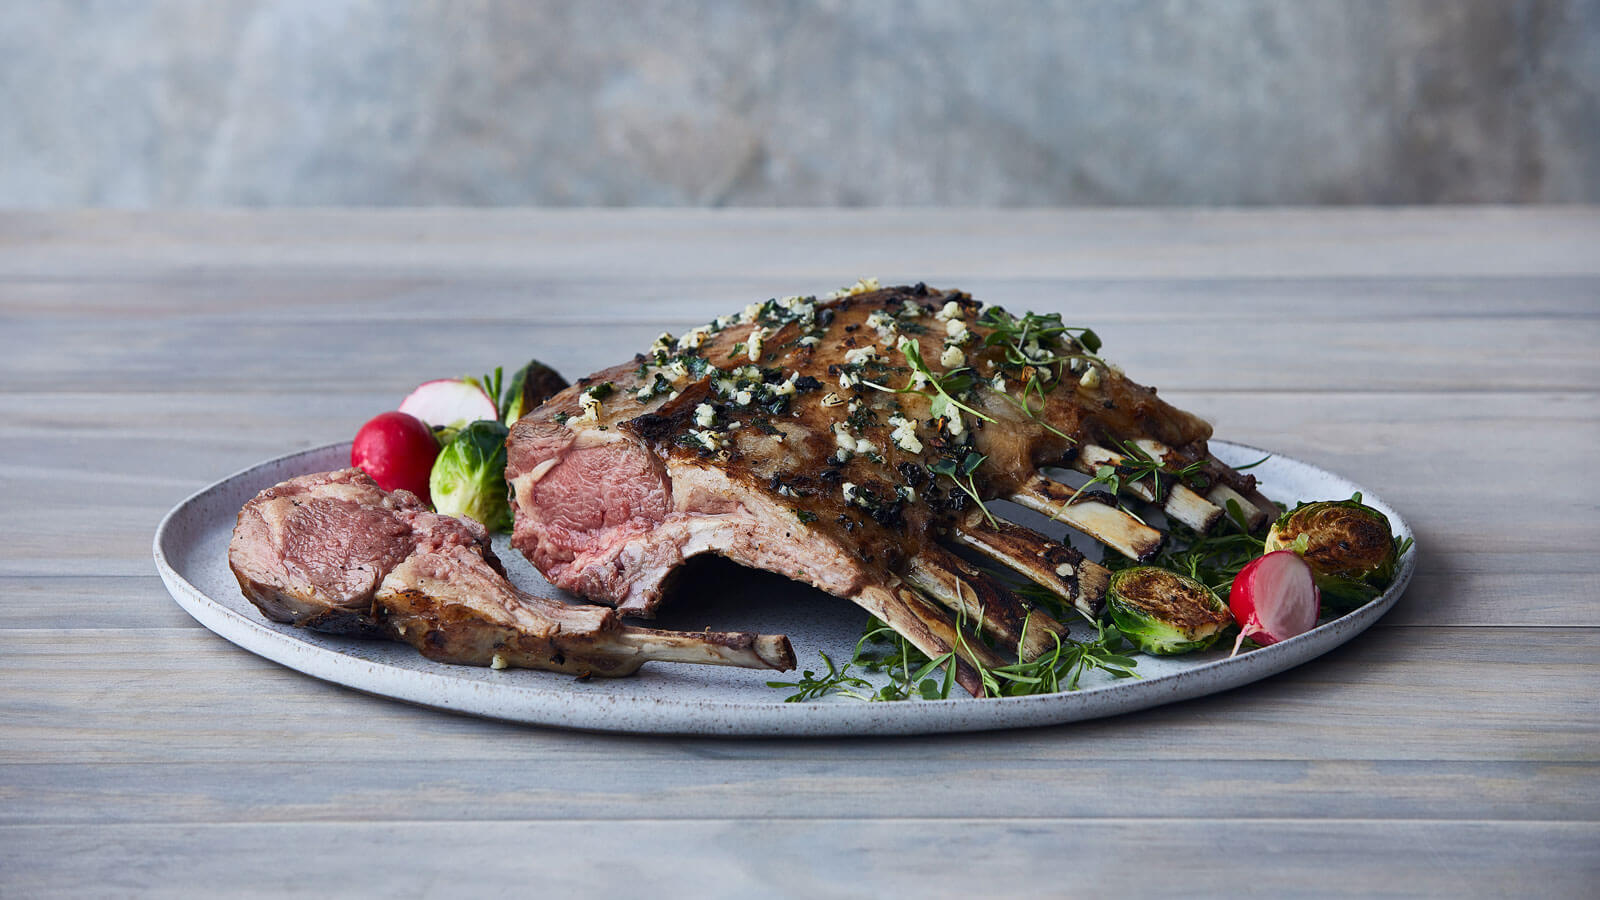 French Cut Rack of Lamb, Seasoned